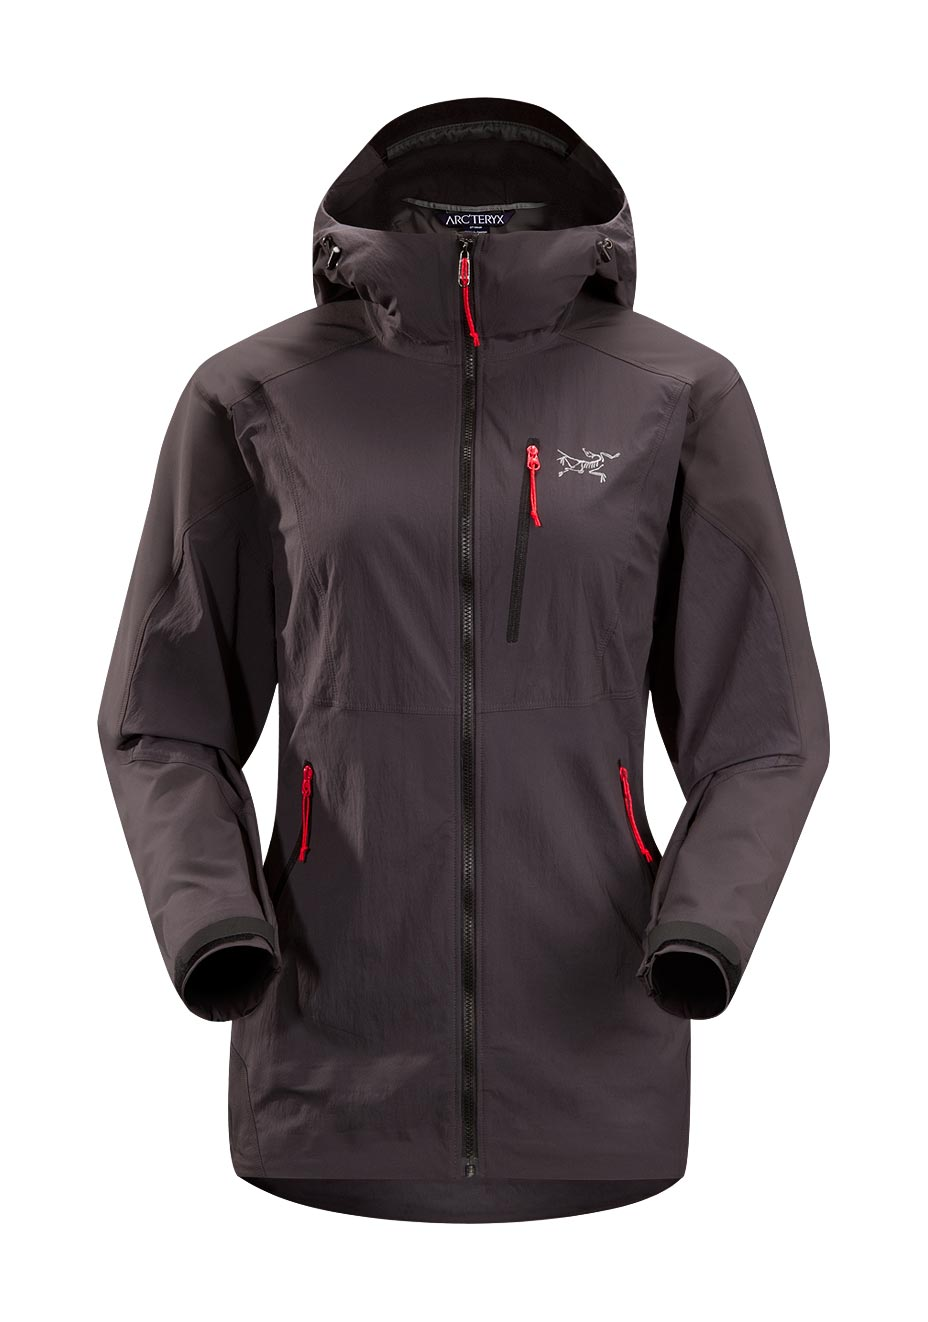 Arcteryx Jackets Women Carbon Copy Gamma SL Hybrid Hoody - New